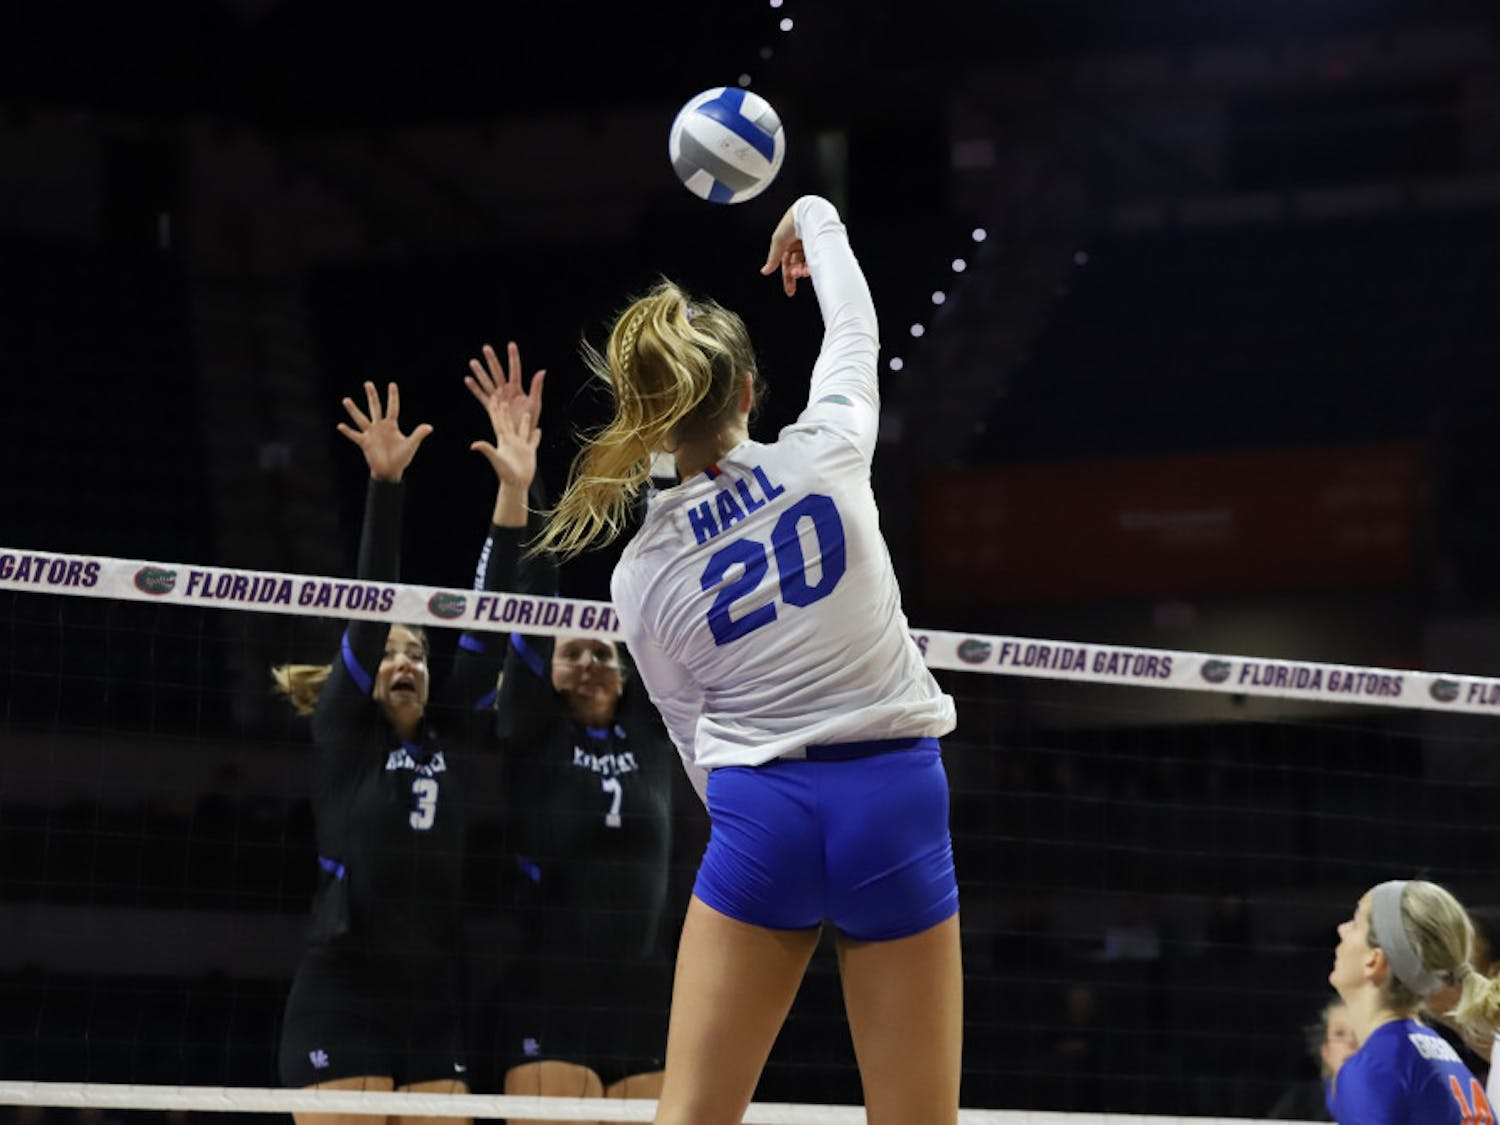 Sophomore Thayer Hall leads the team with 369 kills on the season through 26 matches, 144 more kills than the next-best player.